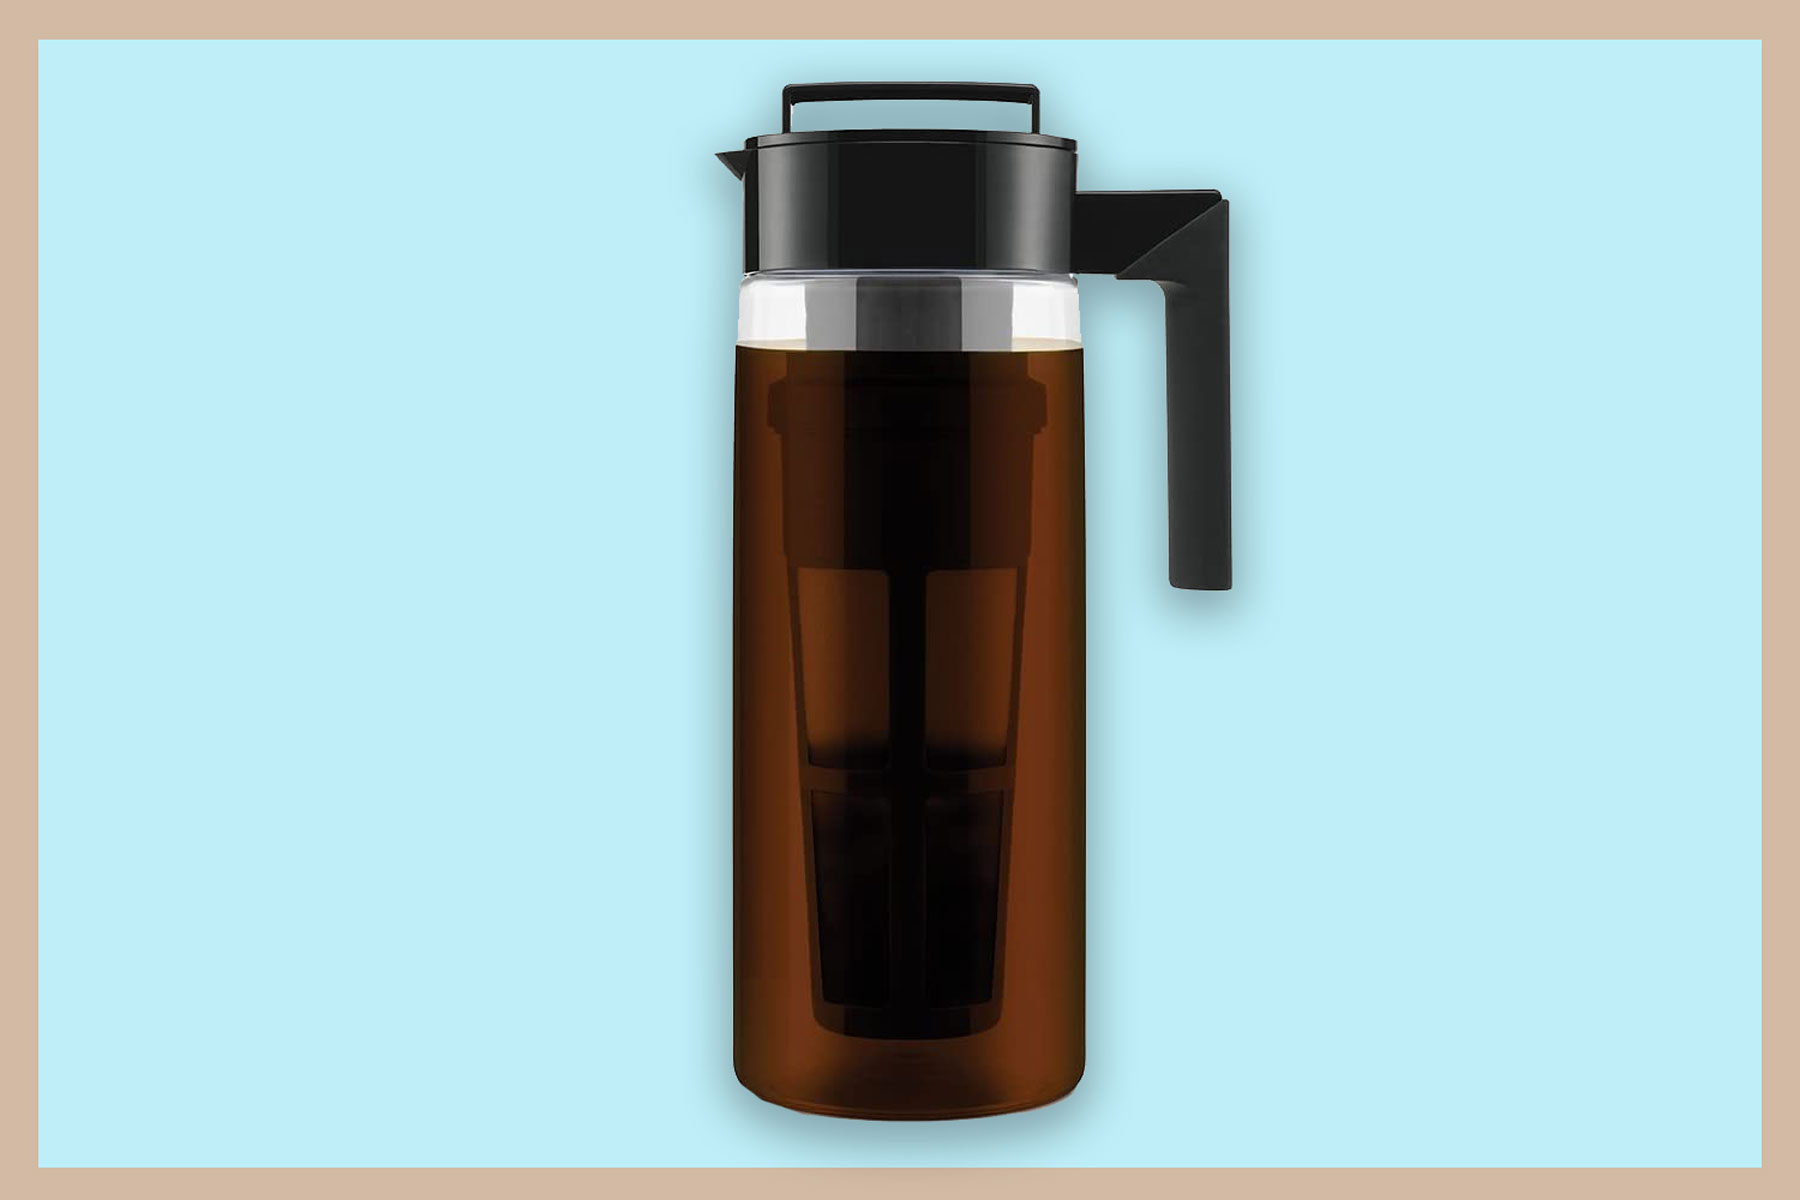 Black and clear coffee pitcher